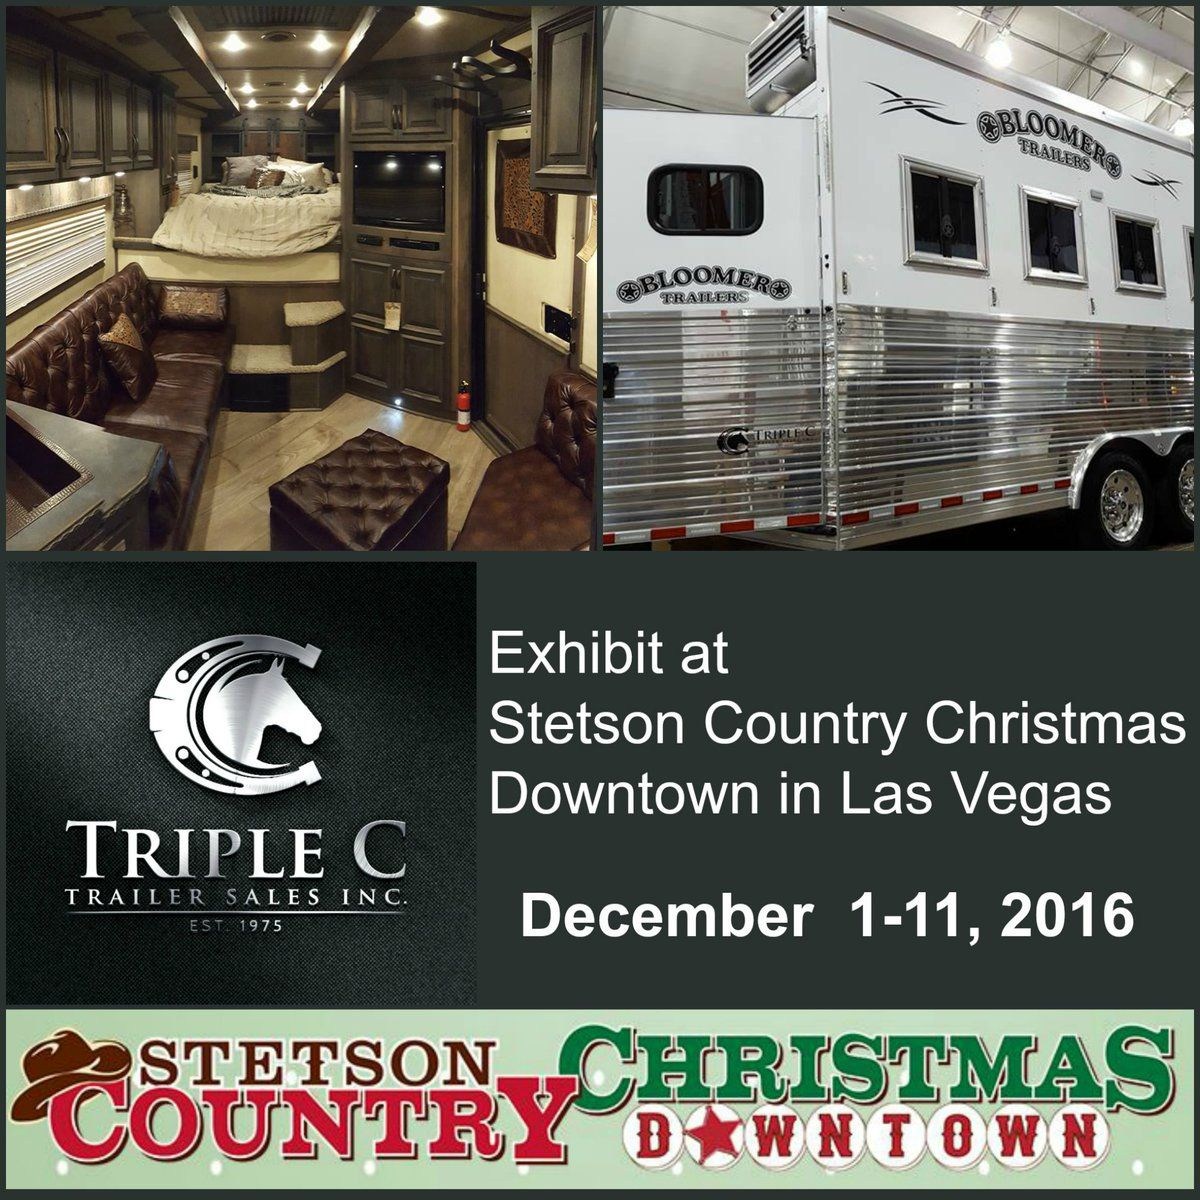 triple c trailers to exhibit at stetson country christmas in las vegas custom bloomer horse - Country Christmas Las Vegas